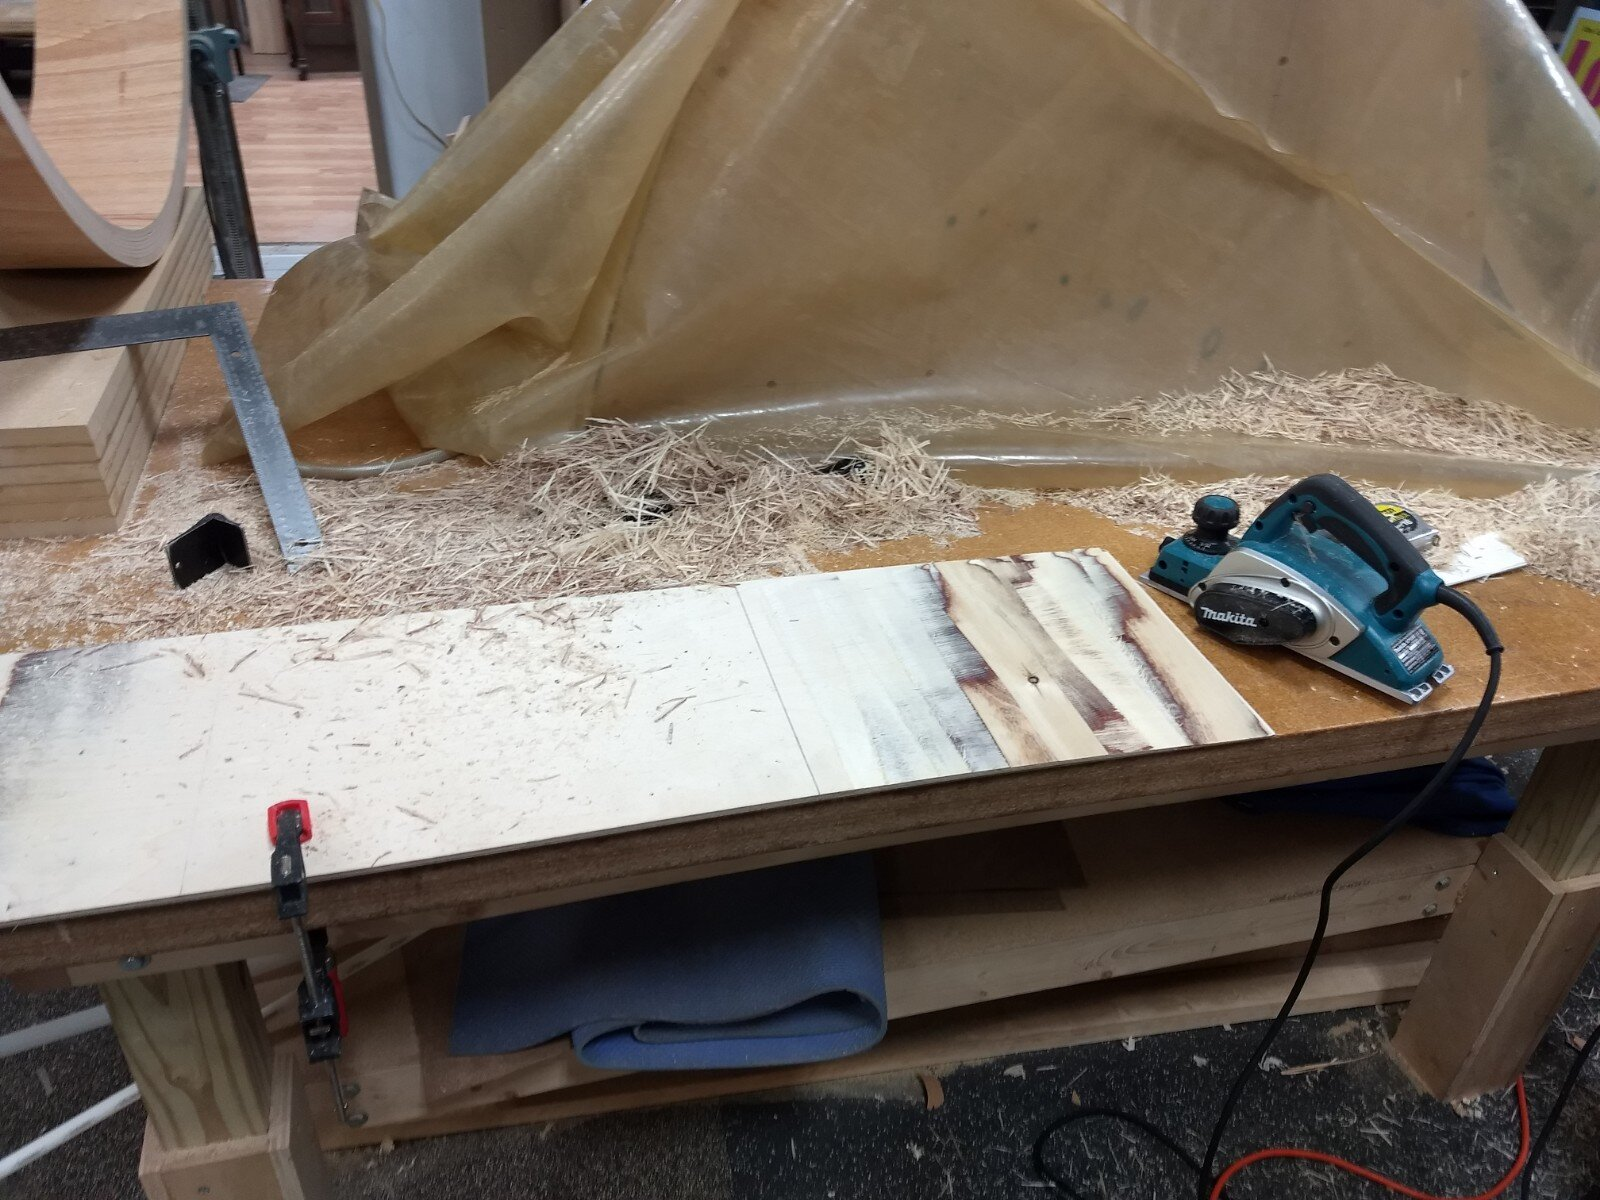 Tapering middle piece of plywood